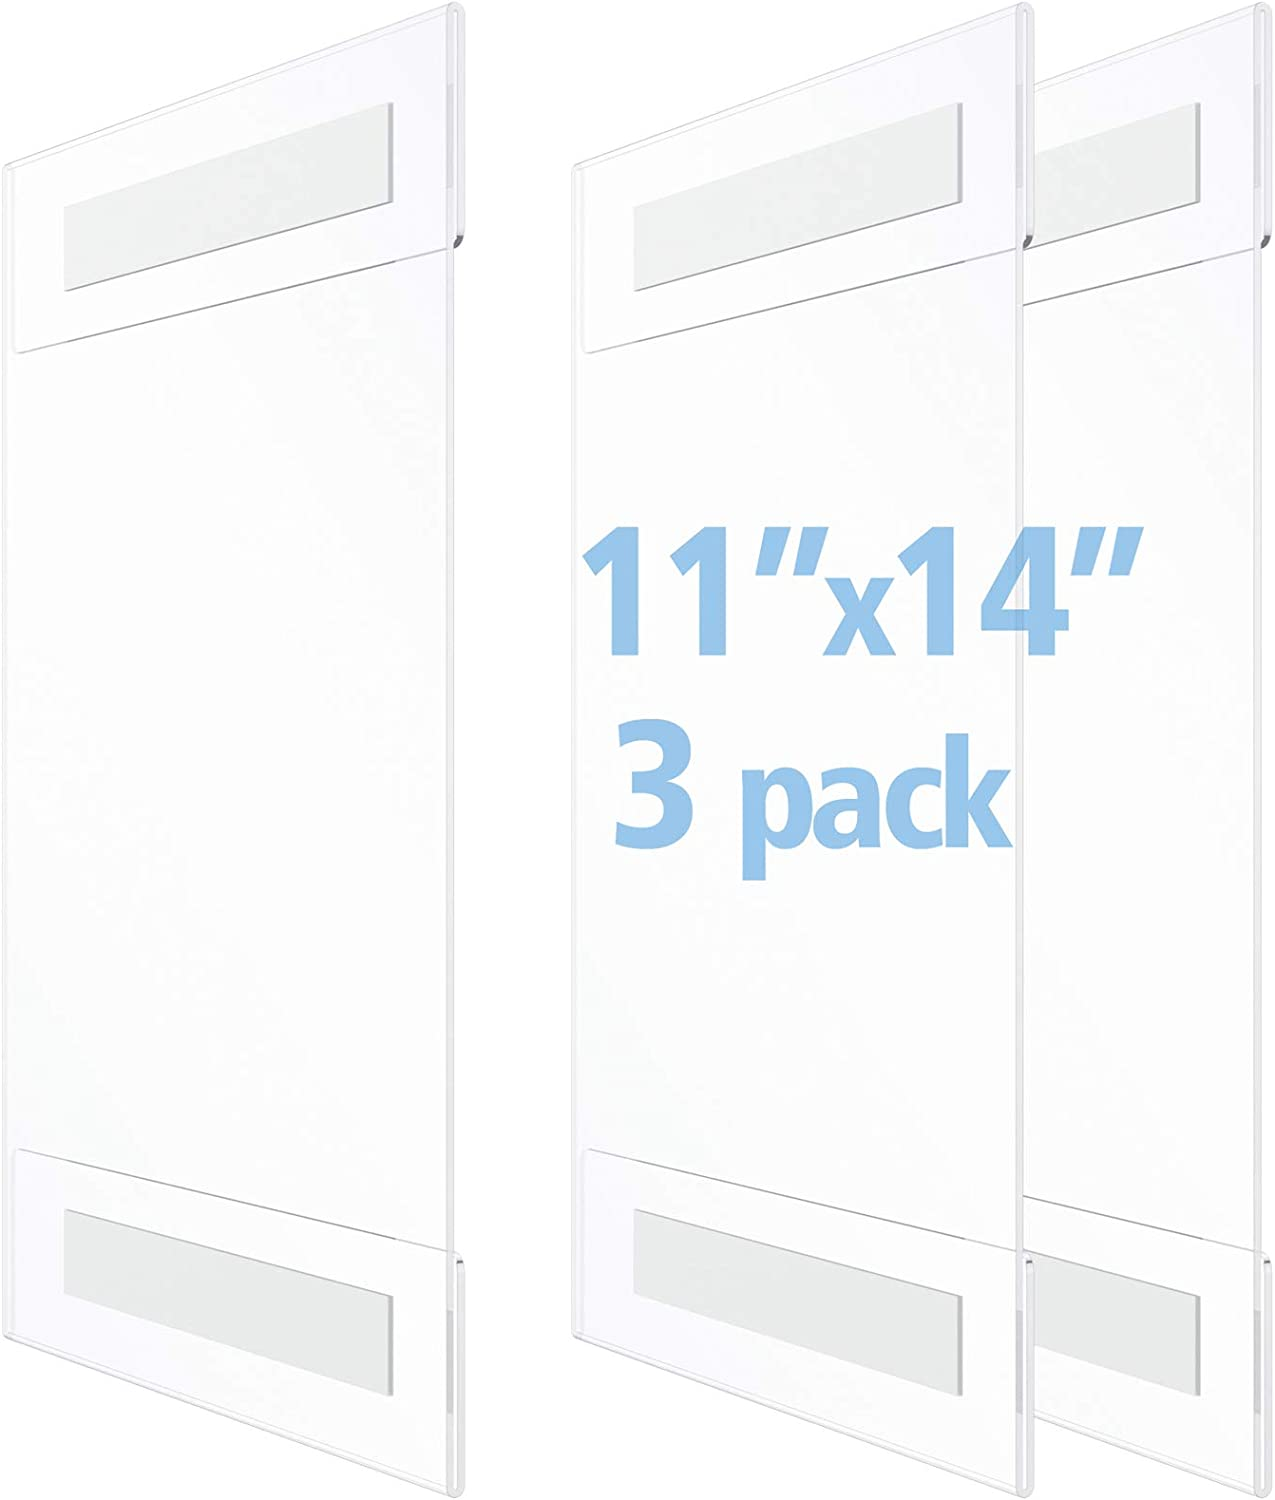 OFFICE MAJOR Acrylic Sign Holder 11x14 - Wall Mount Sign Holder with 3M Tape Adhesive, Office Door Sign, Plastic Frame Wall Sign Holder, Clear Wall Mount Frame (Box of 3)